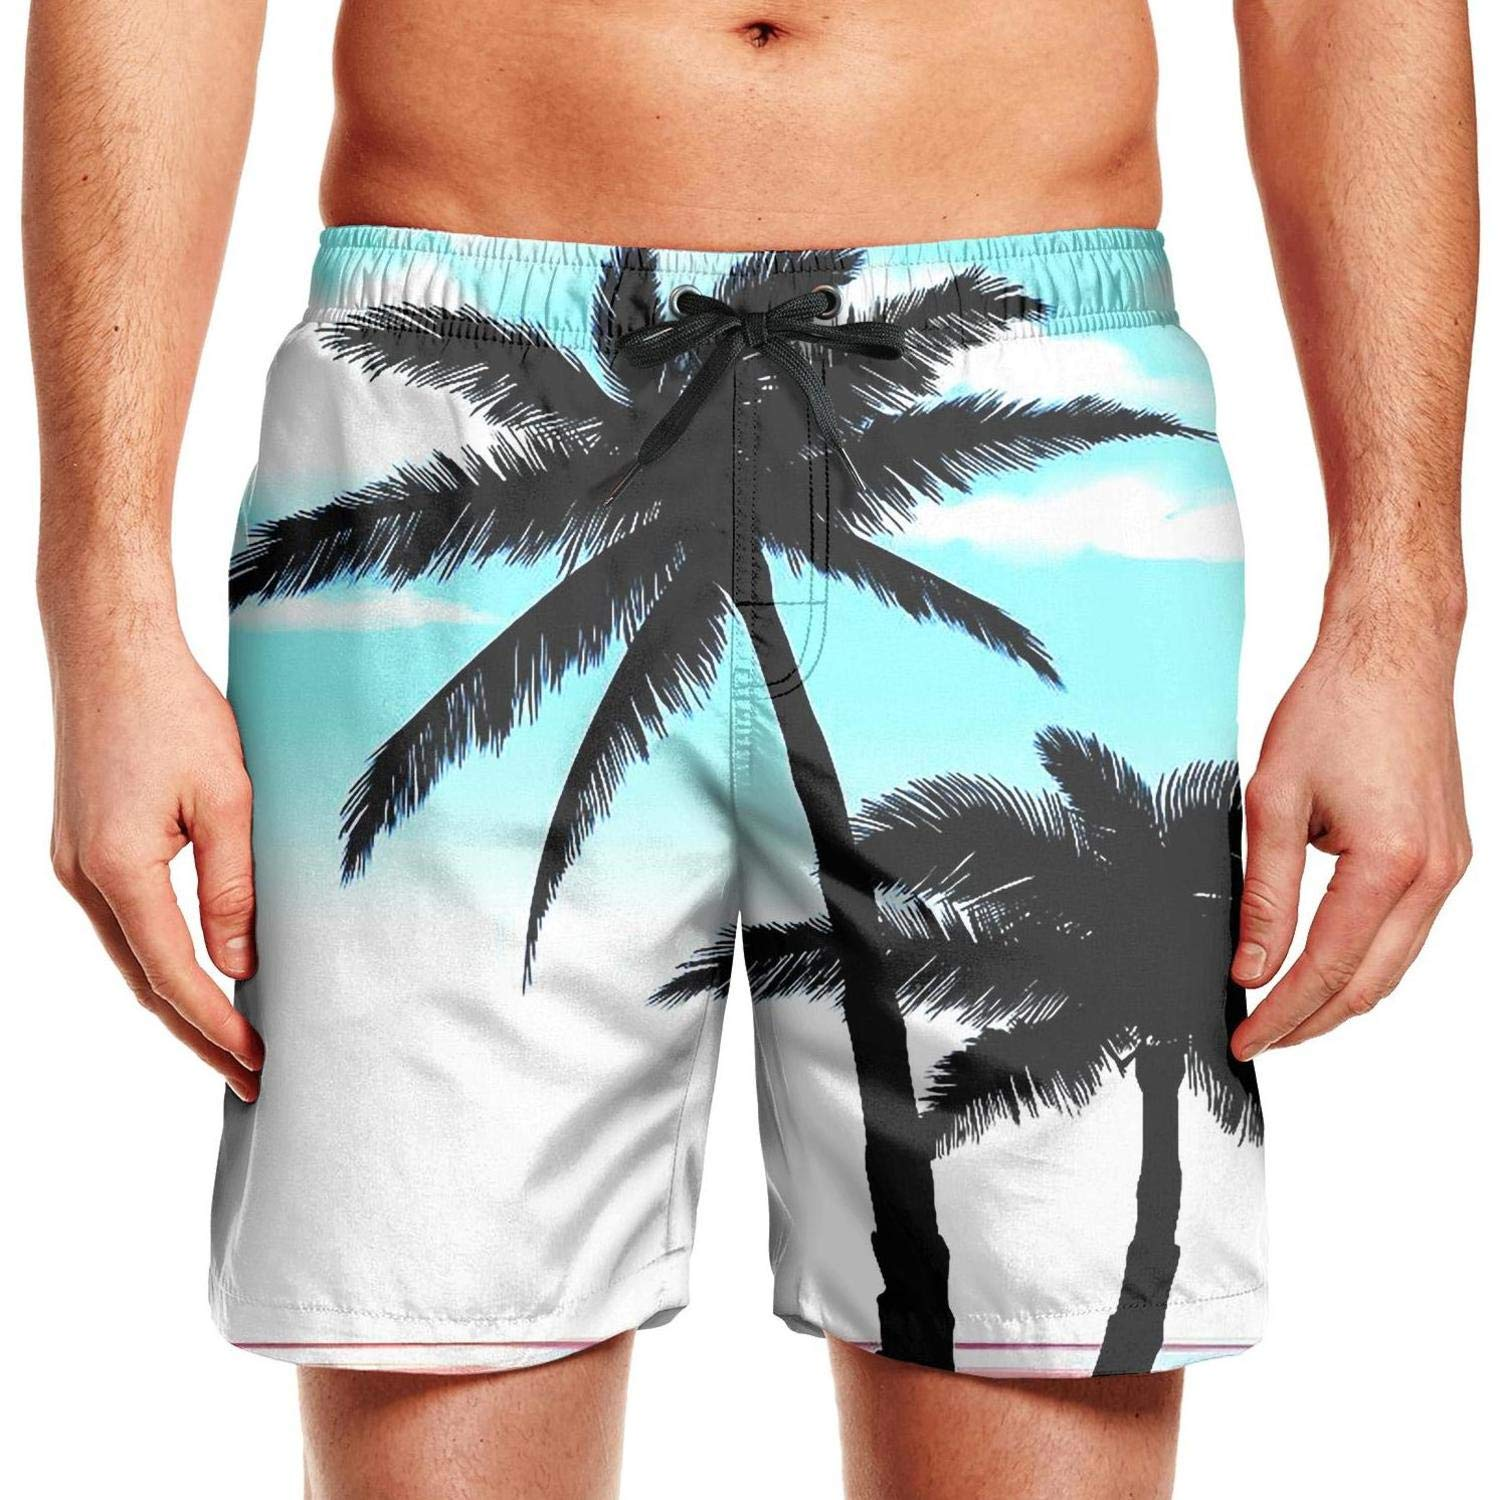 Pink Palm Tree Sunset Hawaii Mens Swimming Trunks Beach Board Shorts Fully Lined Quick Dry Tropical Short Pants Beachwear